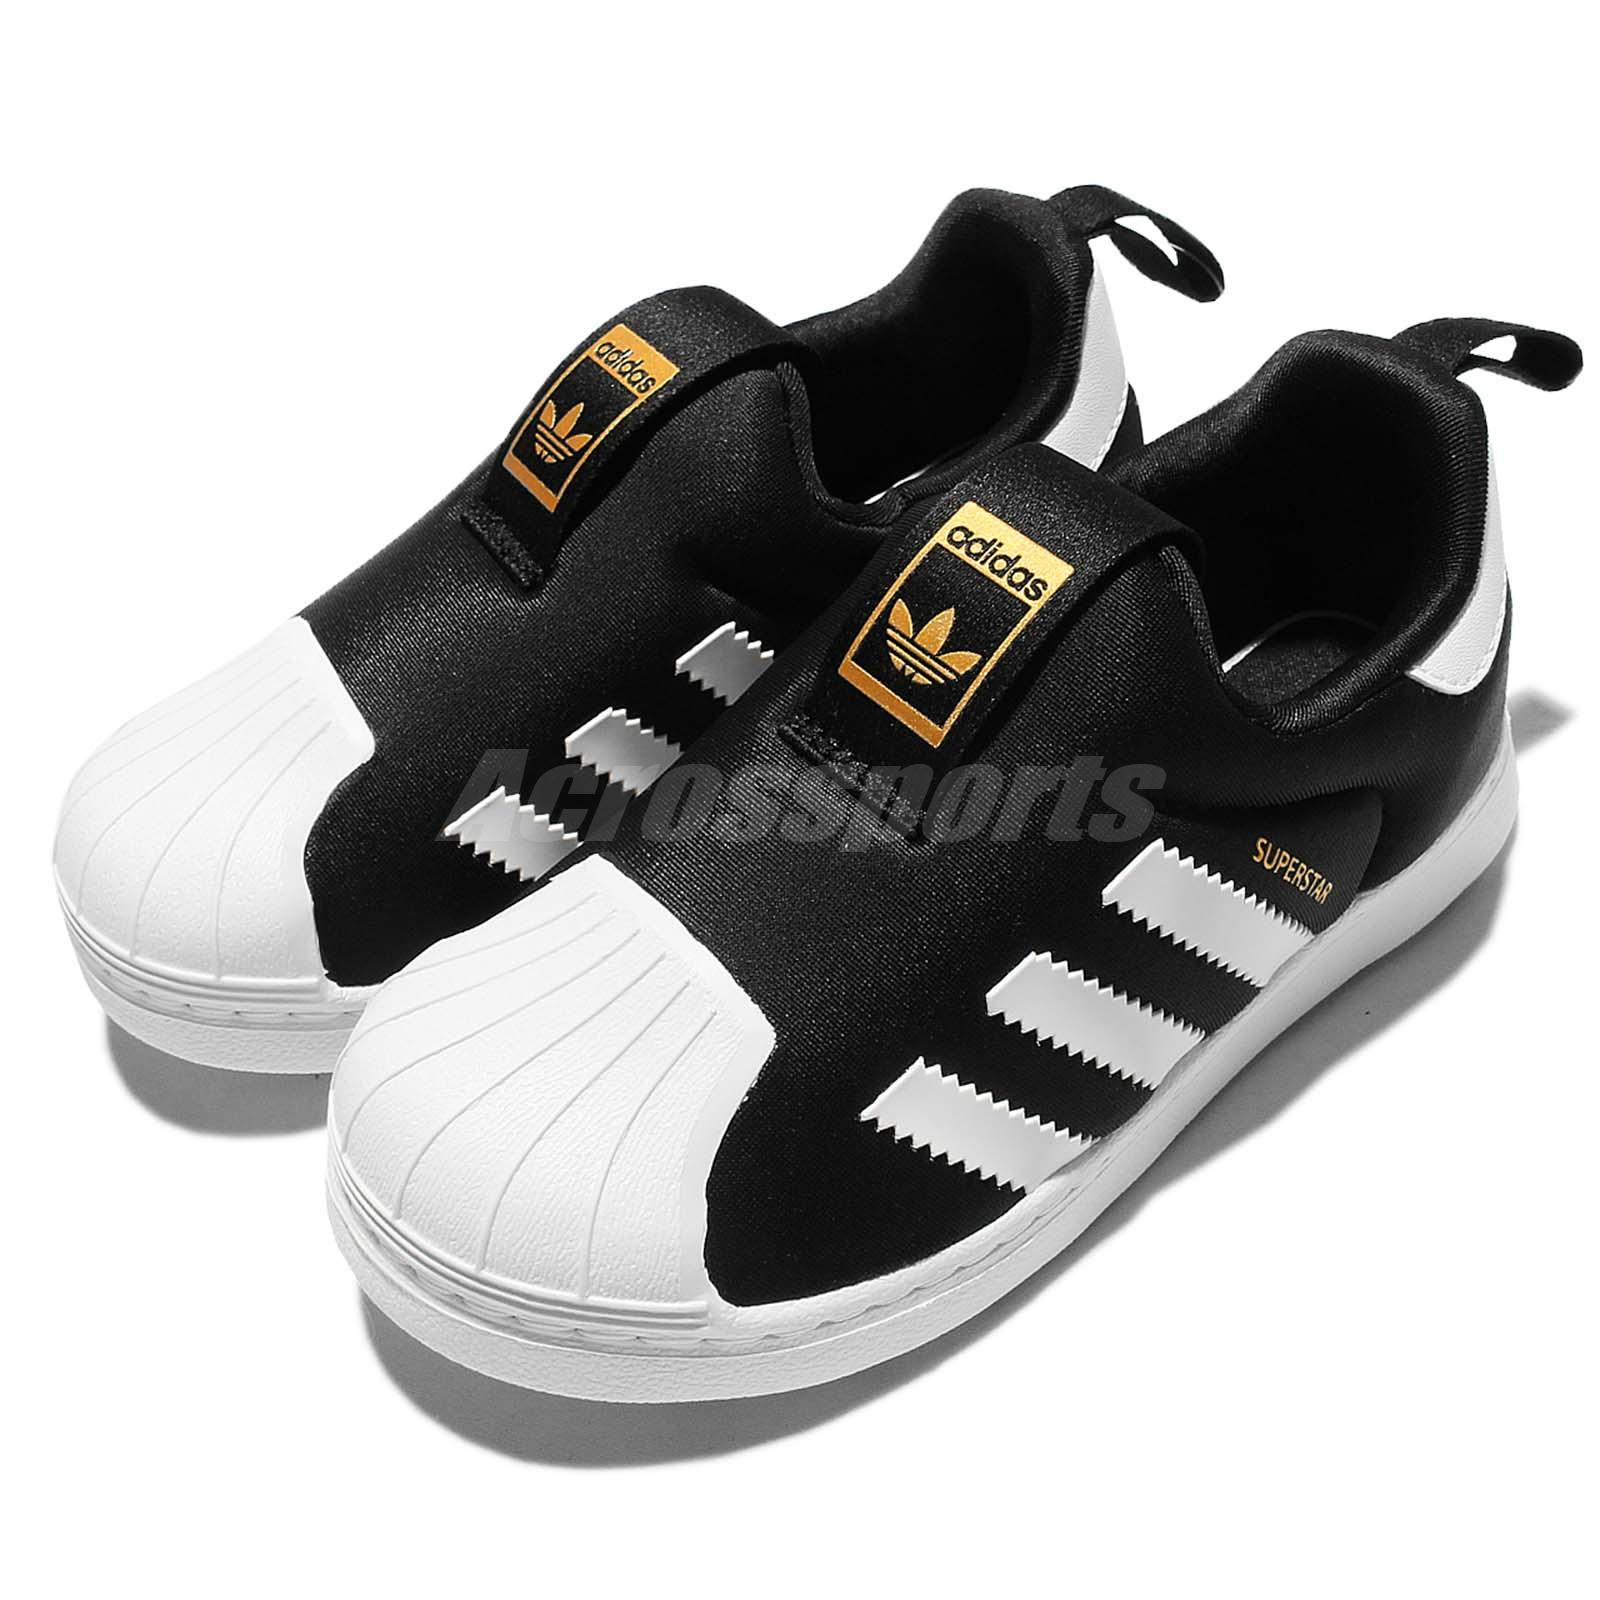 0eacbef555b Details about adidas Originals Superstar 360 I Black White TD Toddler  Infant Baby Shoes S82711